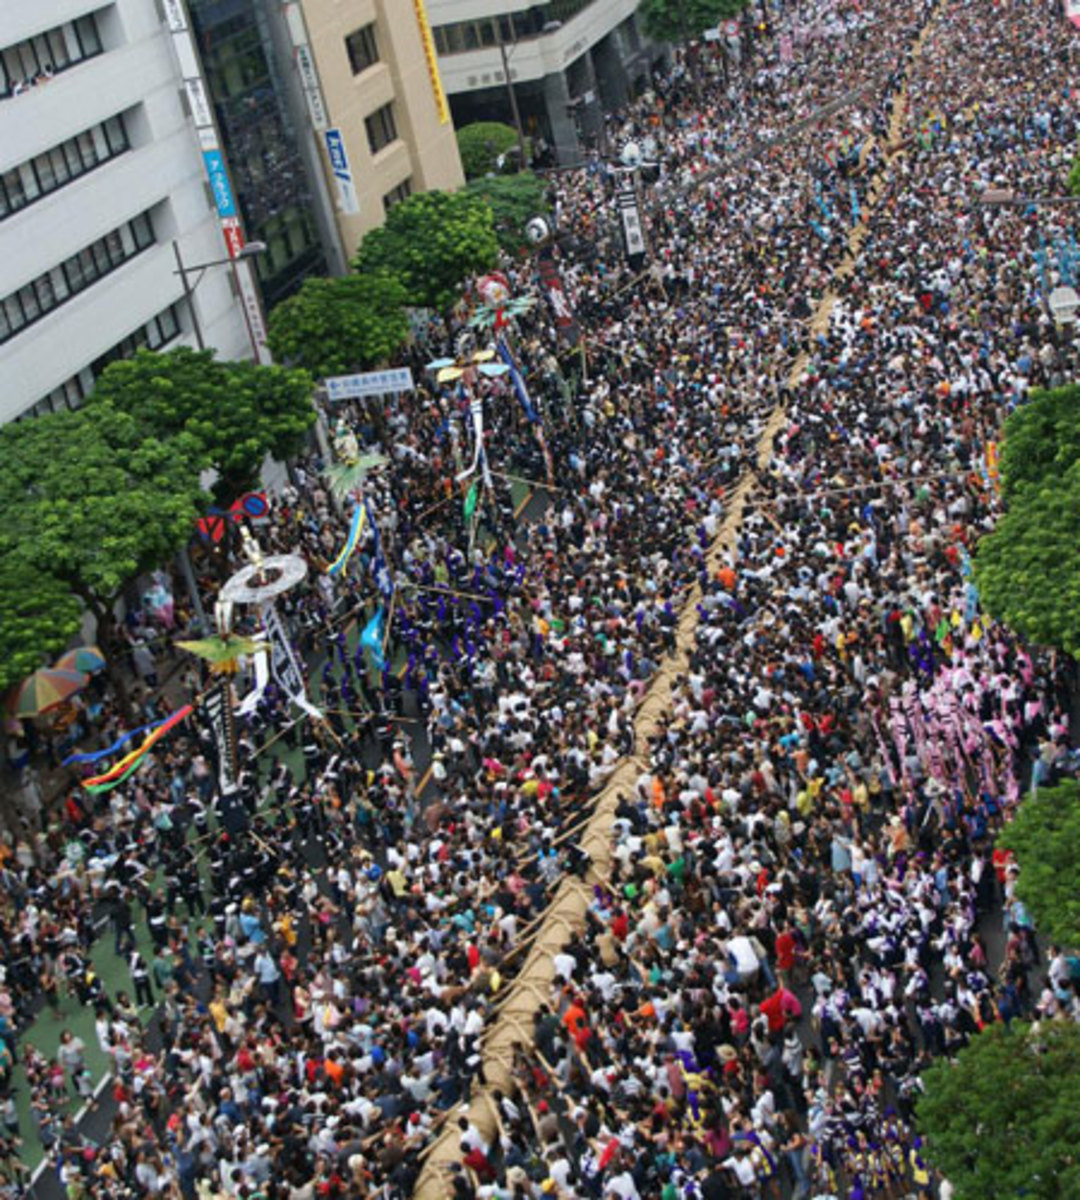 The world's largest tug of war in Okinawa.